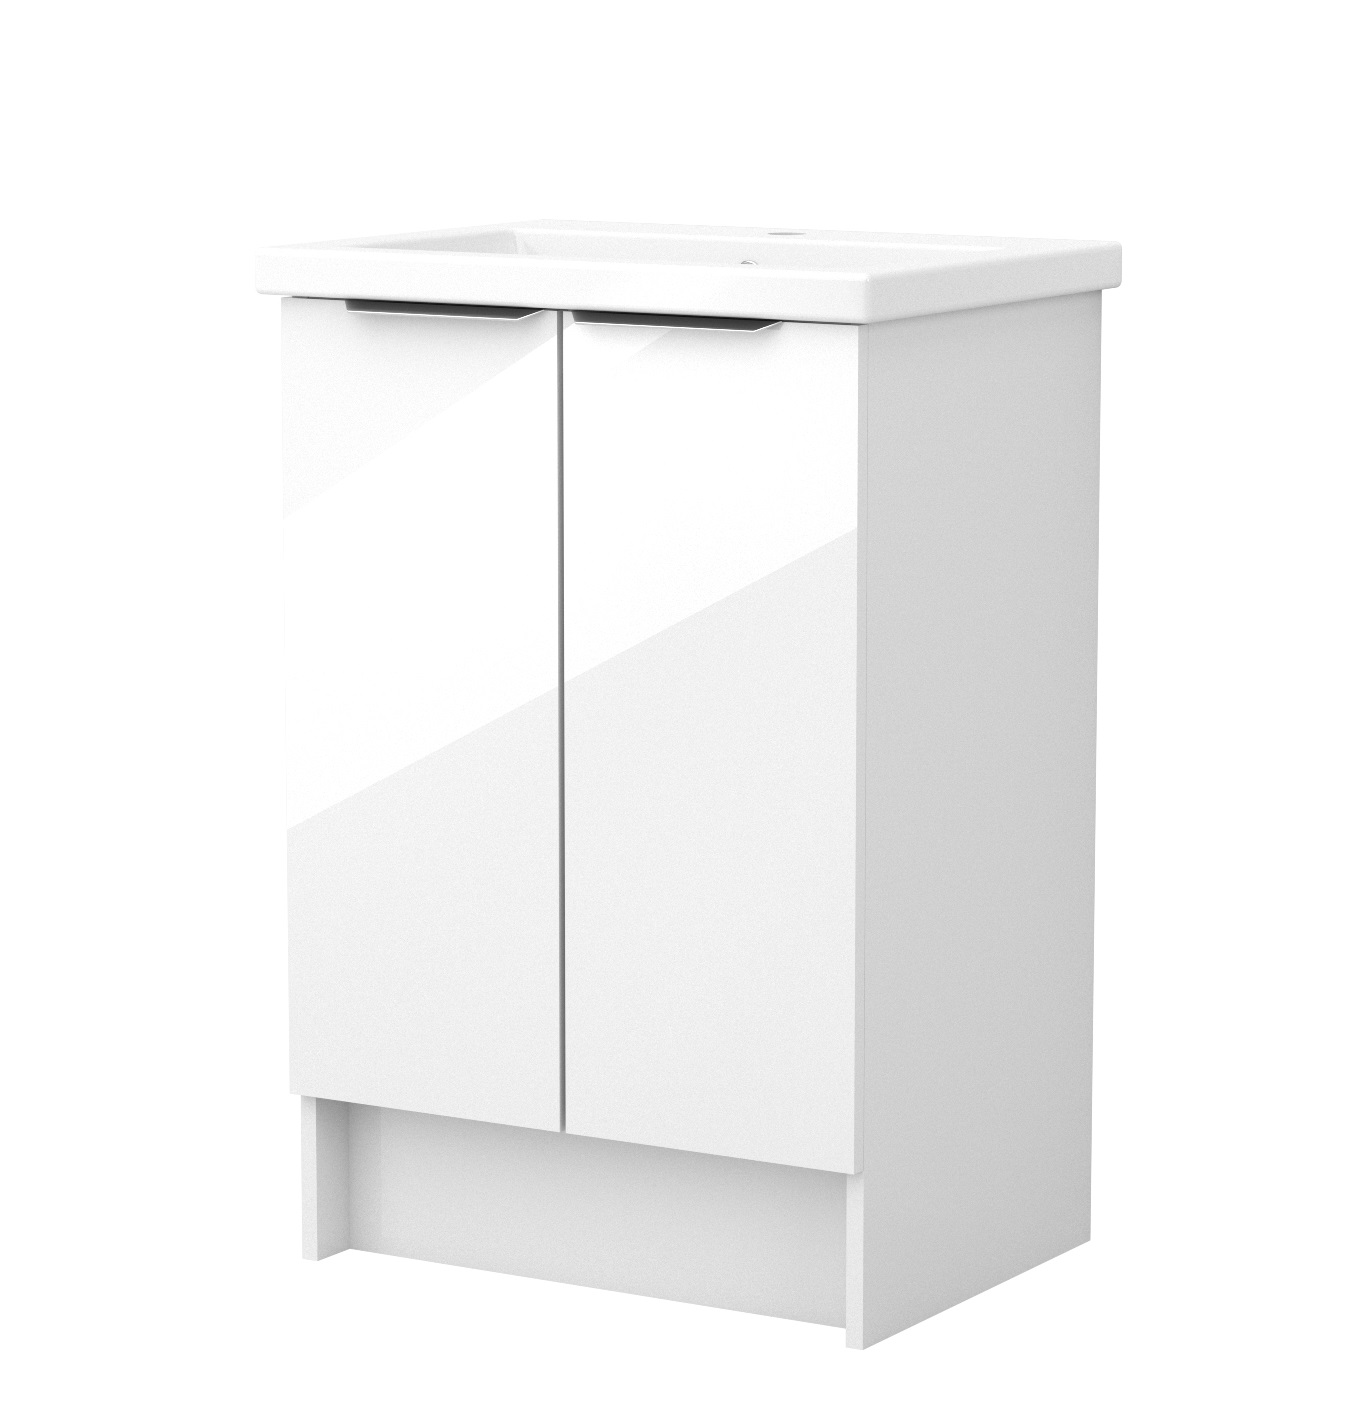 click on 60cm Floorstanding Double Door Unit image to enlarge